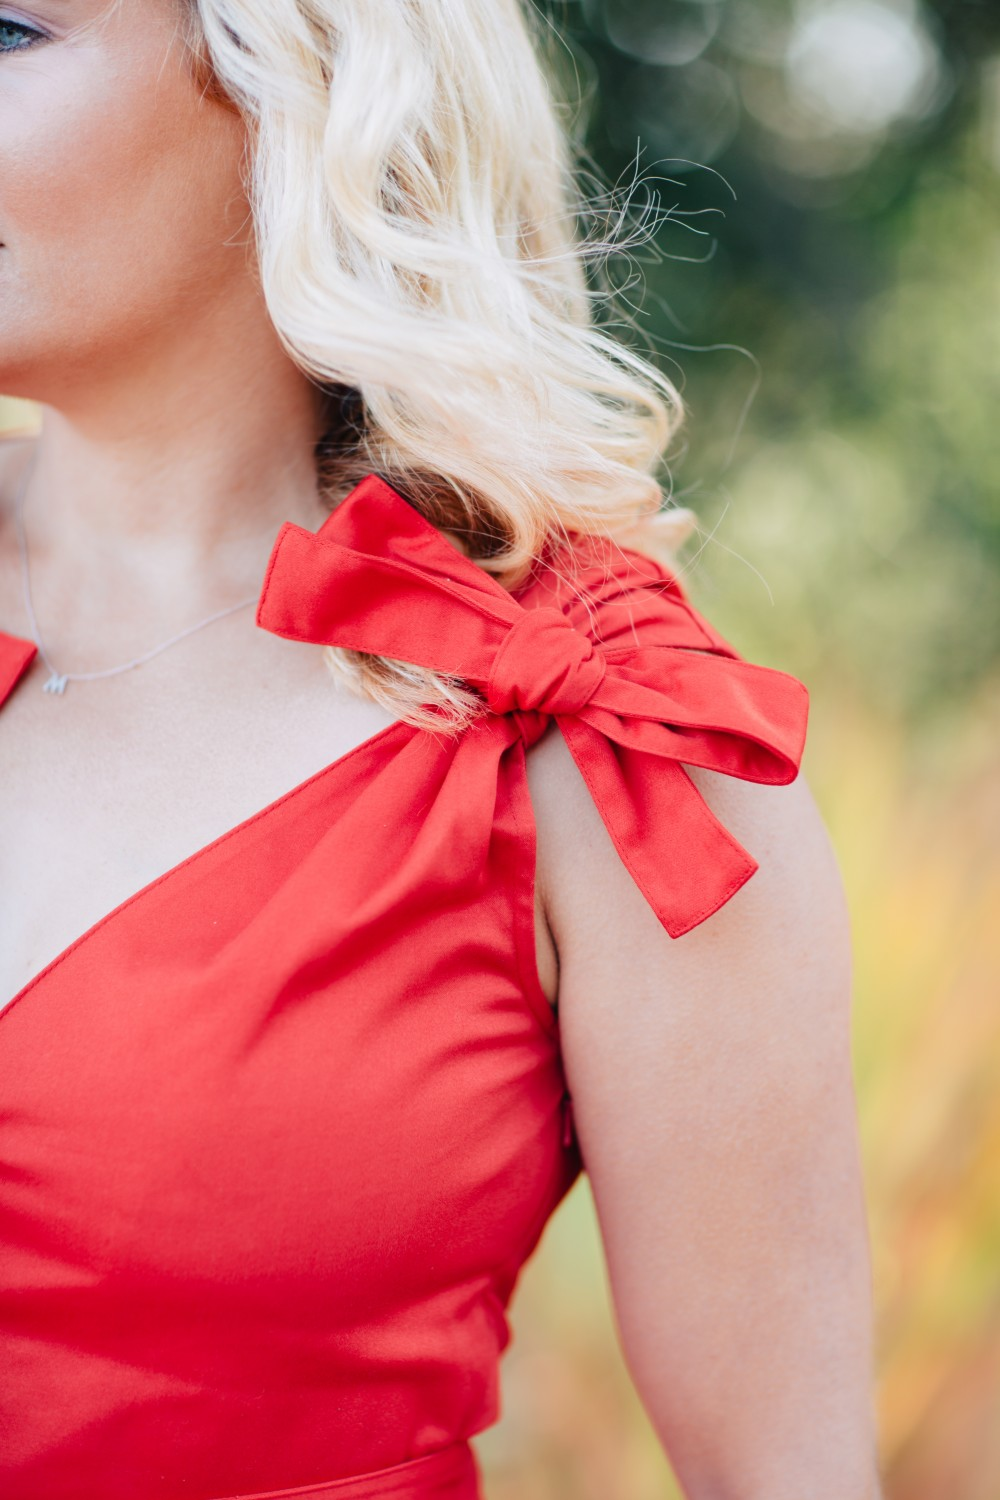 Little Red Dress-Alexis-Bow Detail Dress-Outfit Inspiration-Schutz Heels-Have Need Want 7